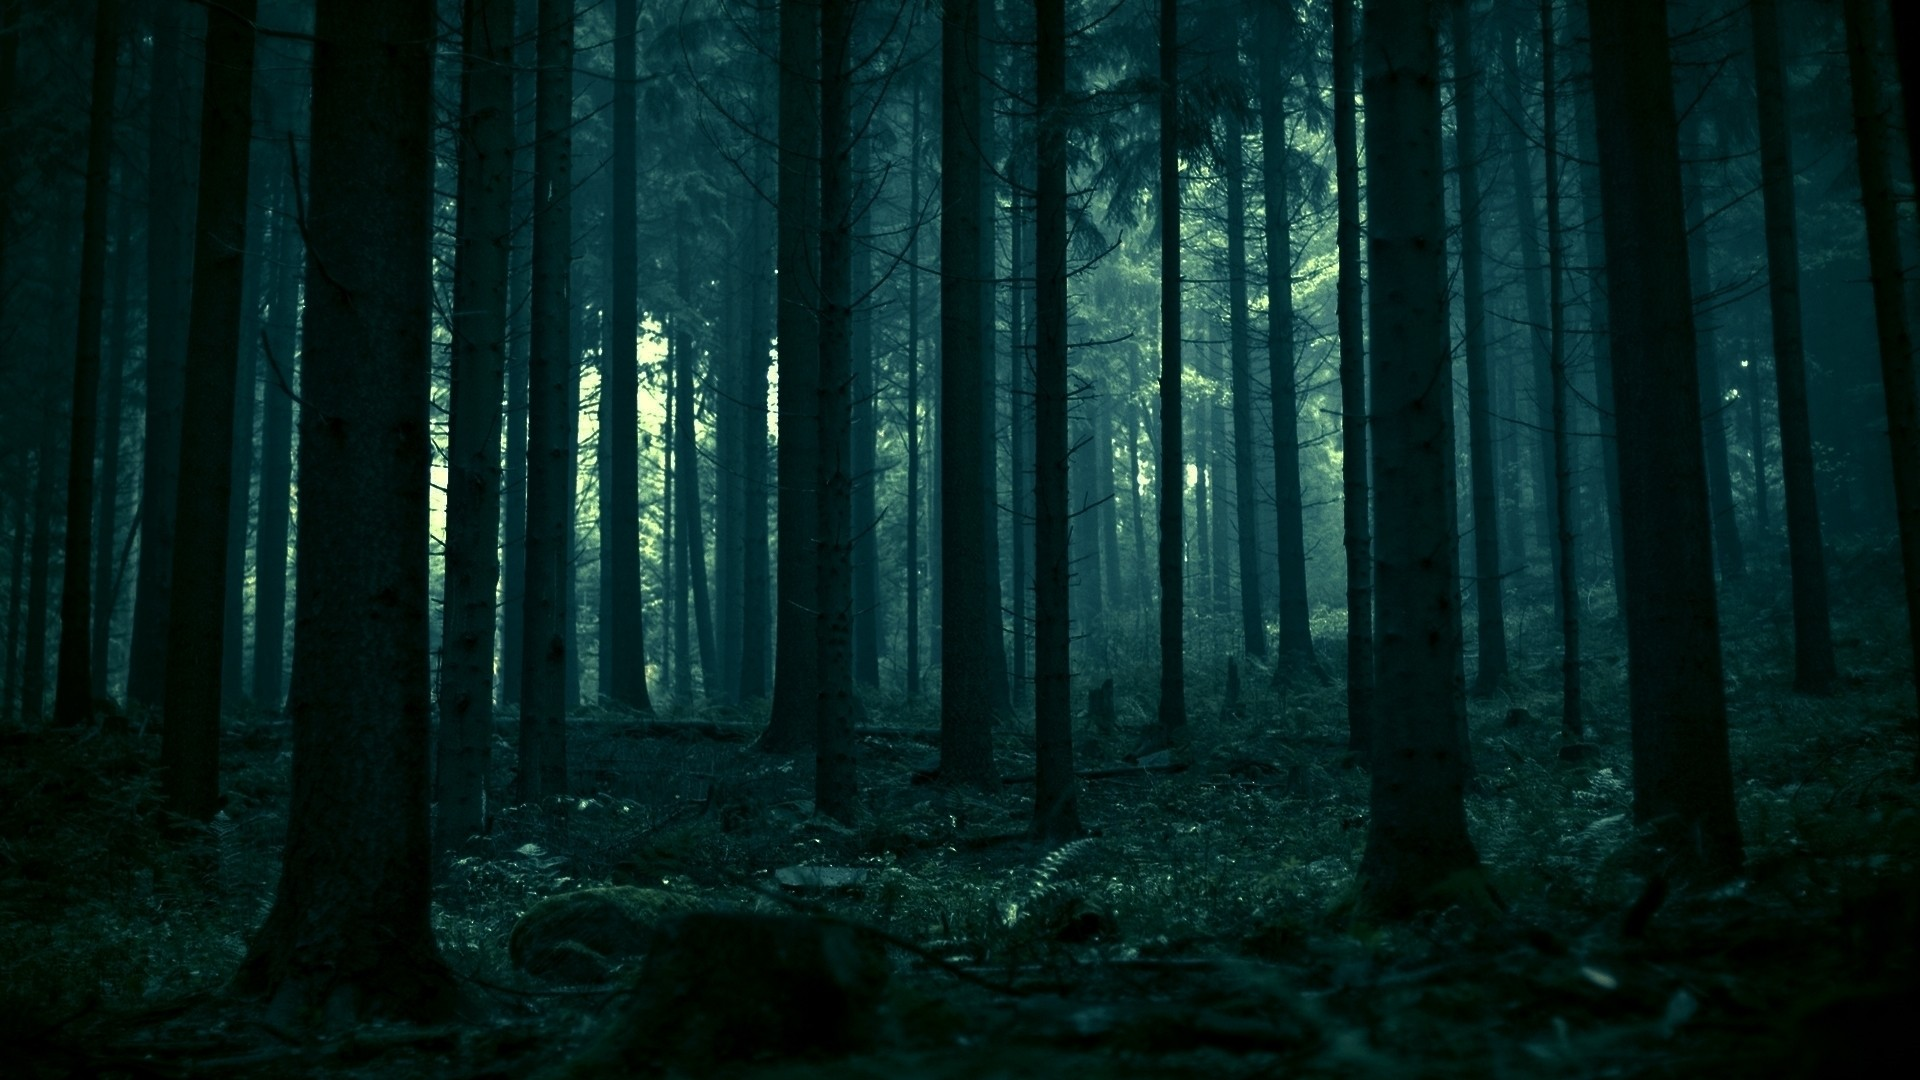 dark spruce trees pine trees forest nature dead trees landscape